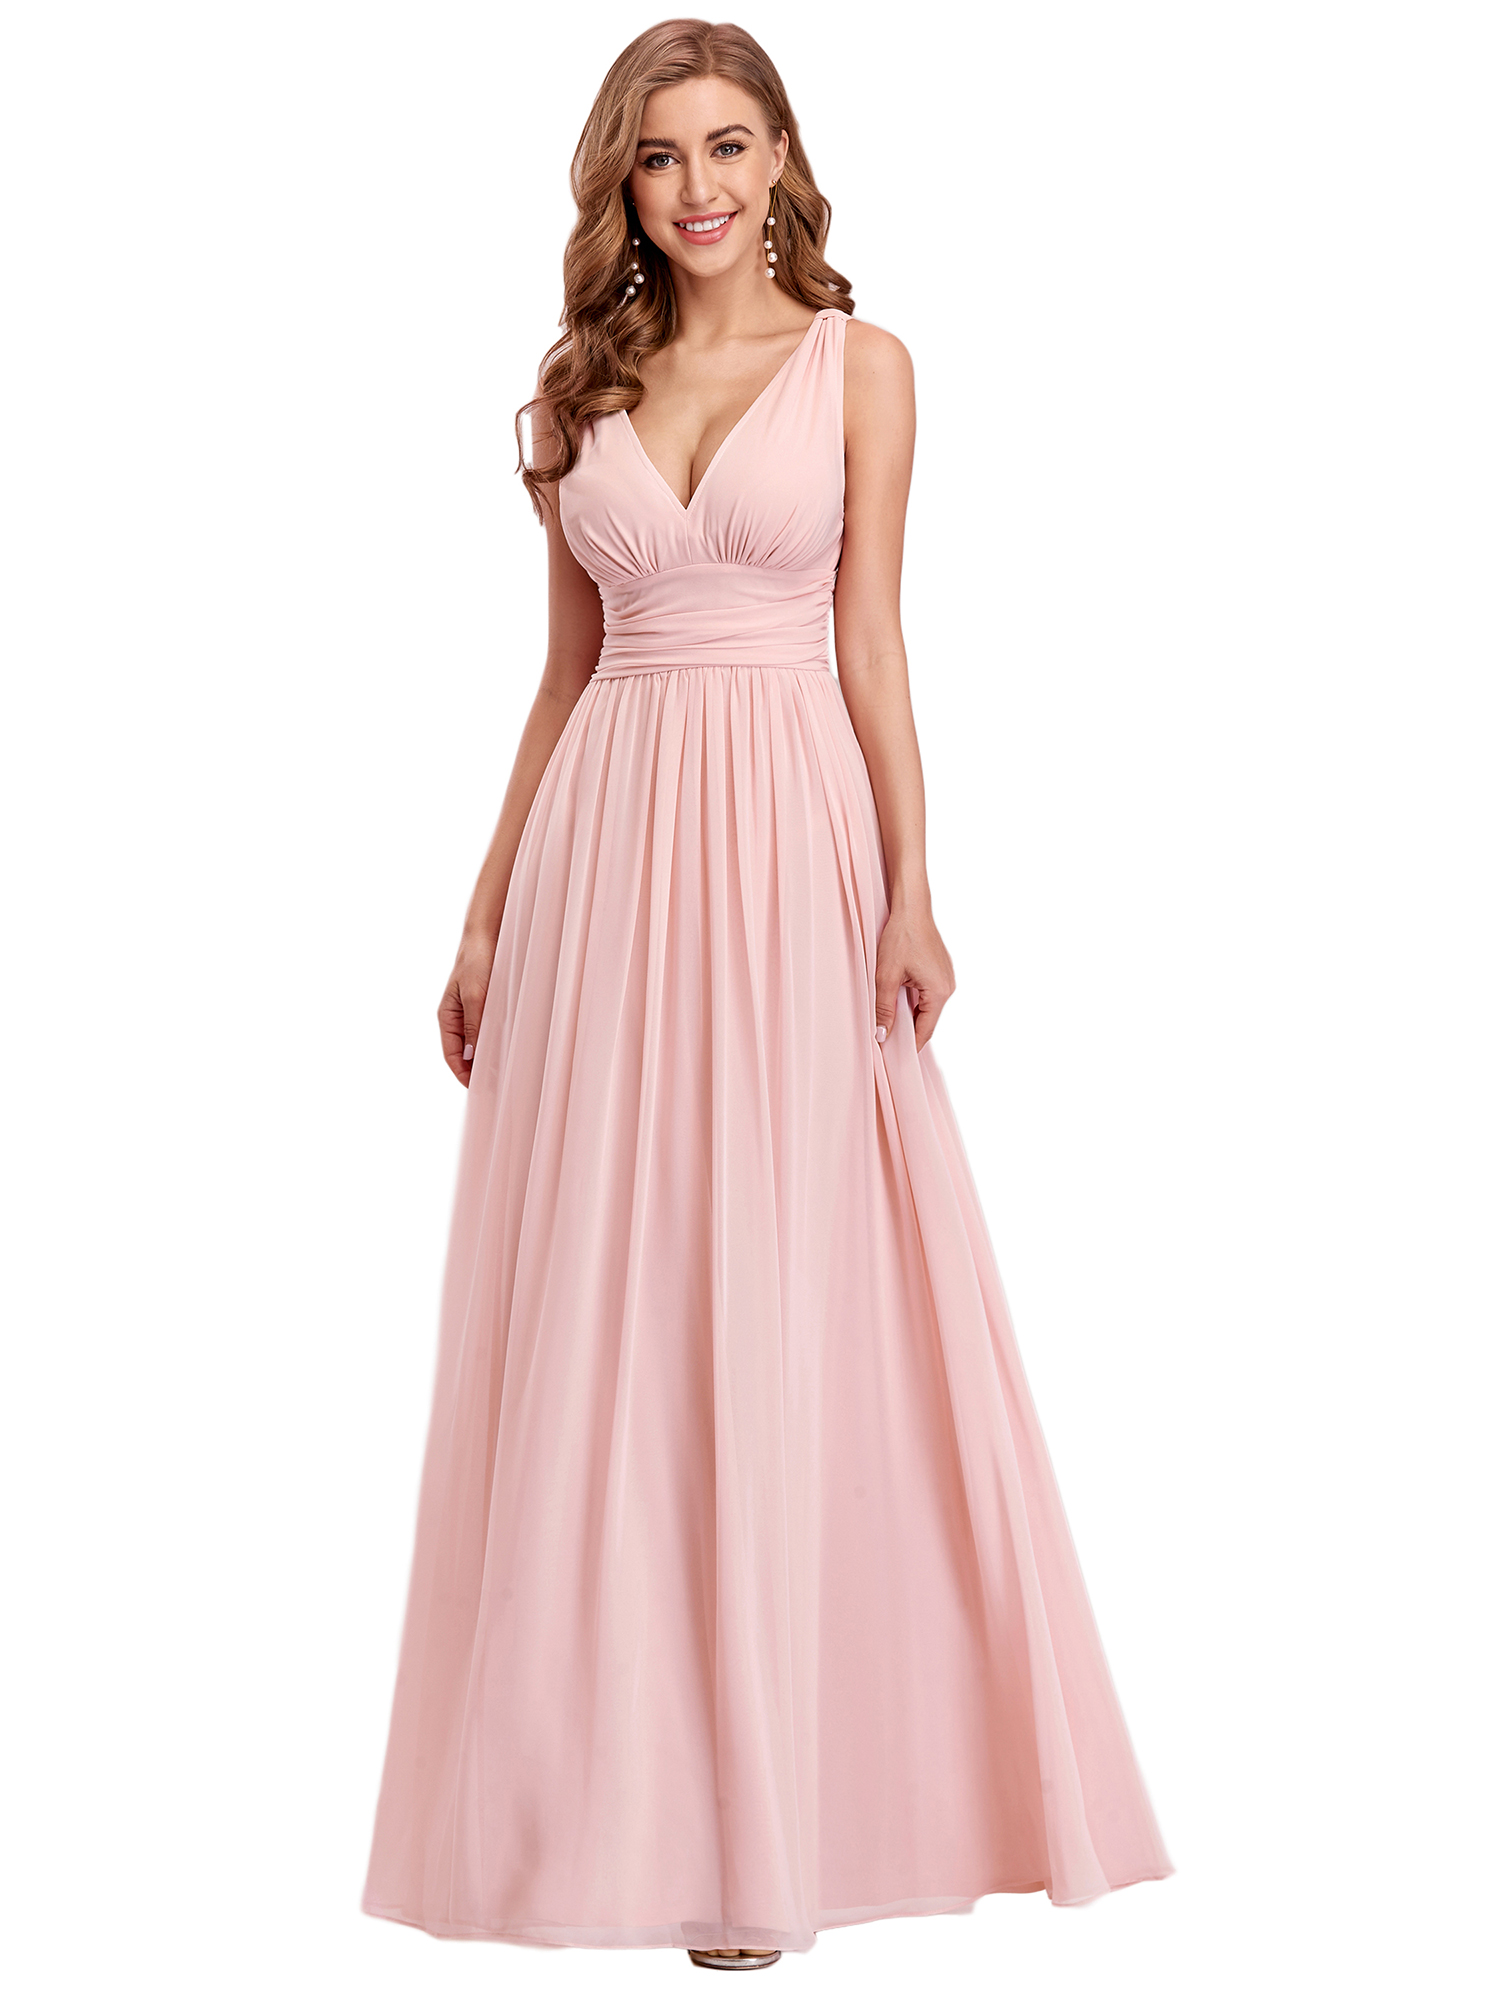 Long Bridesmaid Evening Formal Dresses V-neck Party Prom Gown 09016 ...